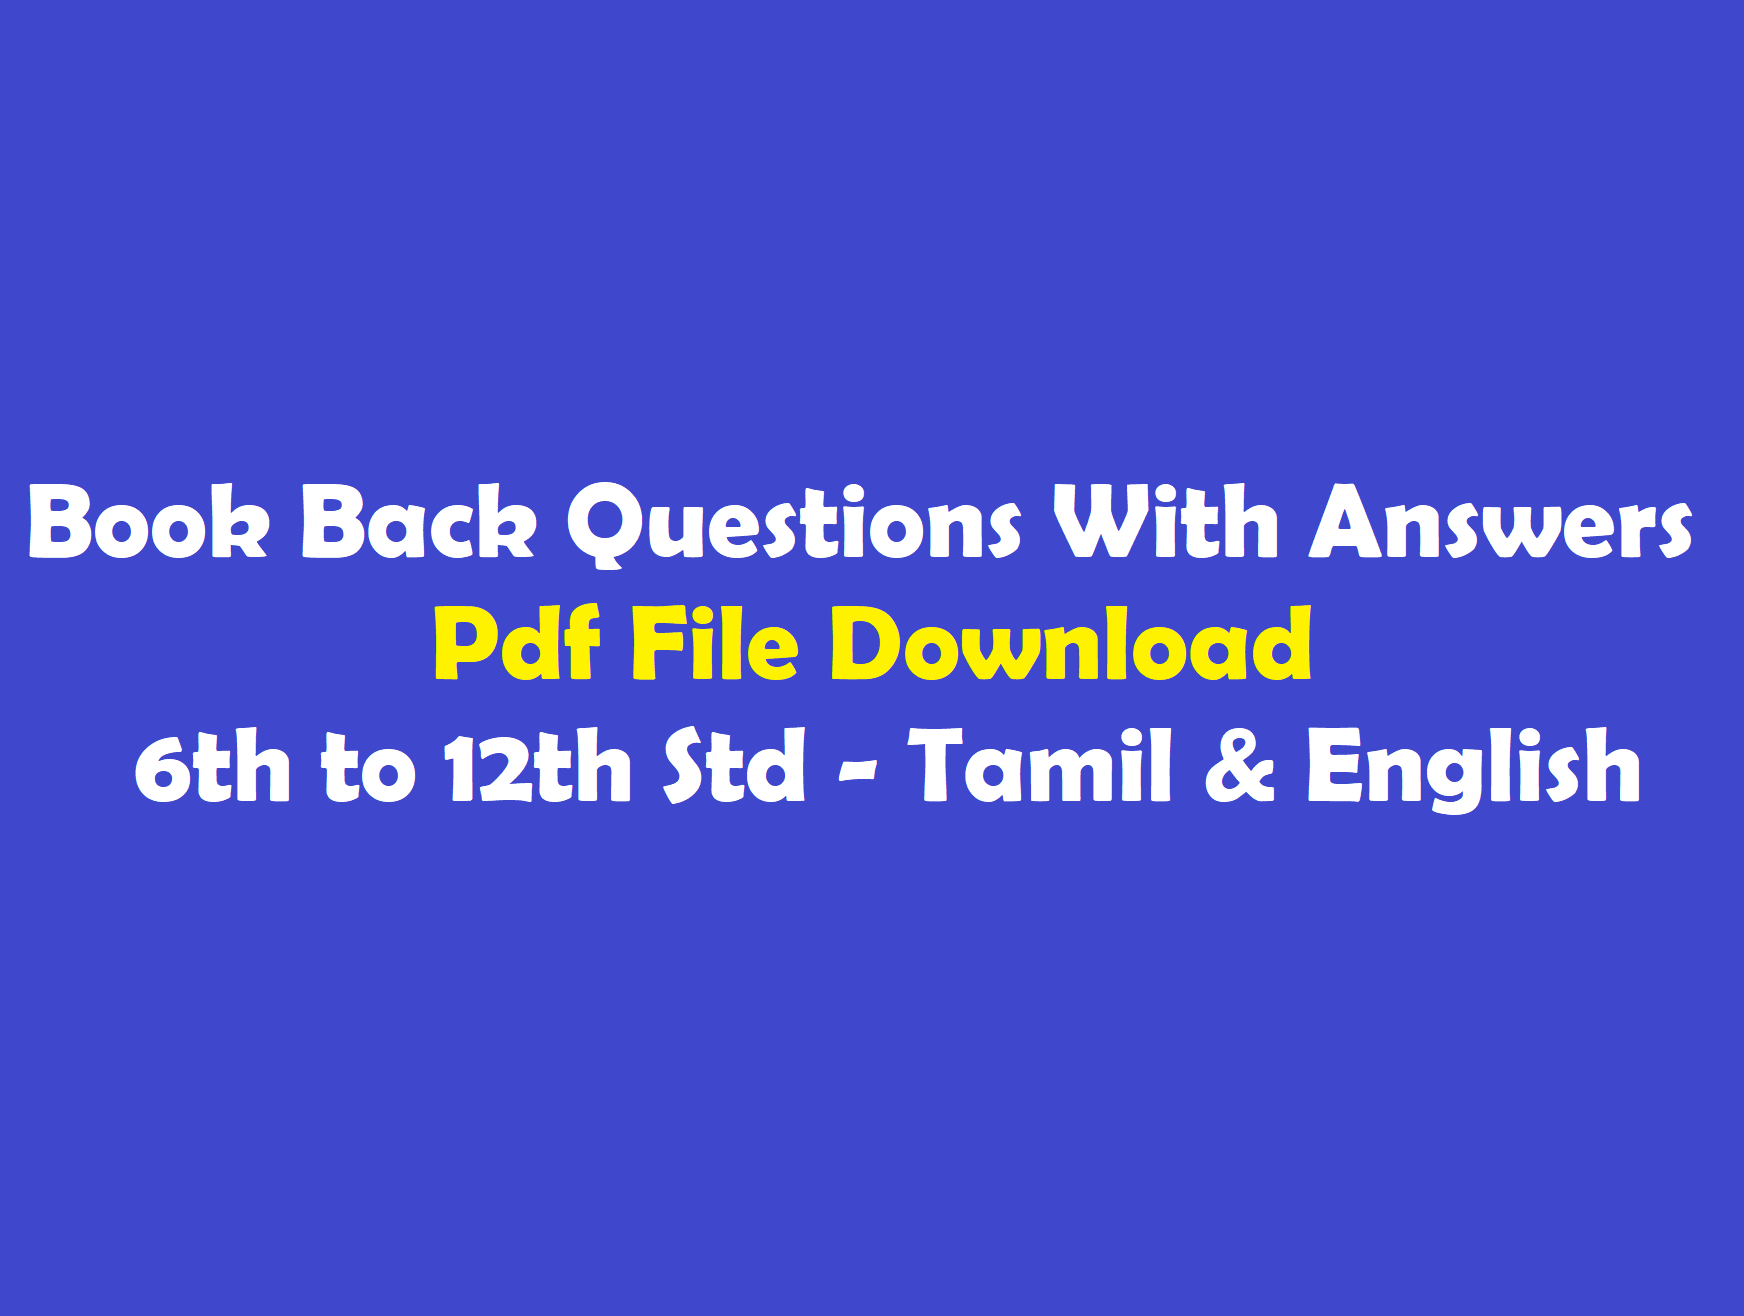 6th to 12th Std Tnpsc Samacheer Book Back Questions with Answers Pdf in  Tamil & English - WINMEEN